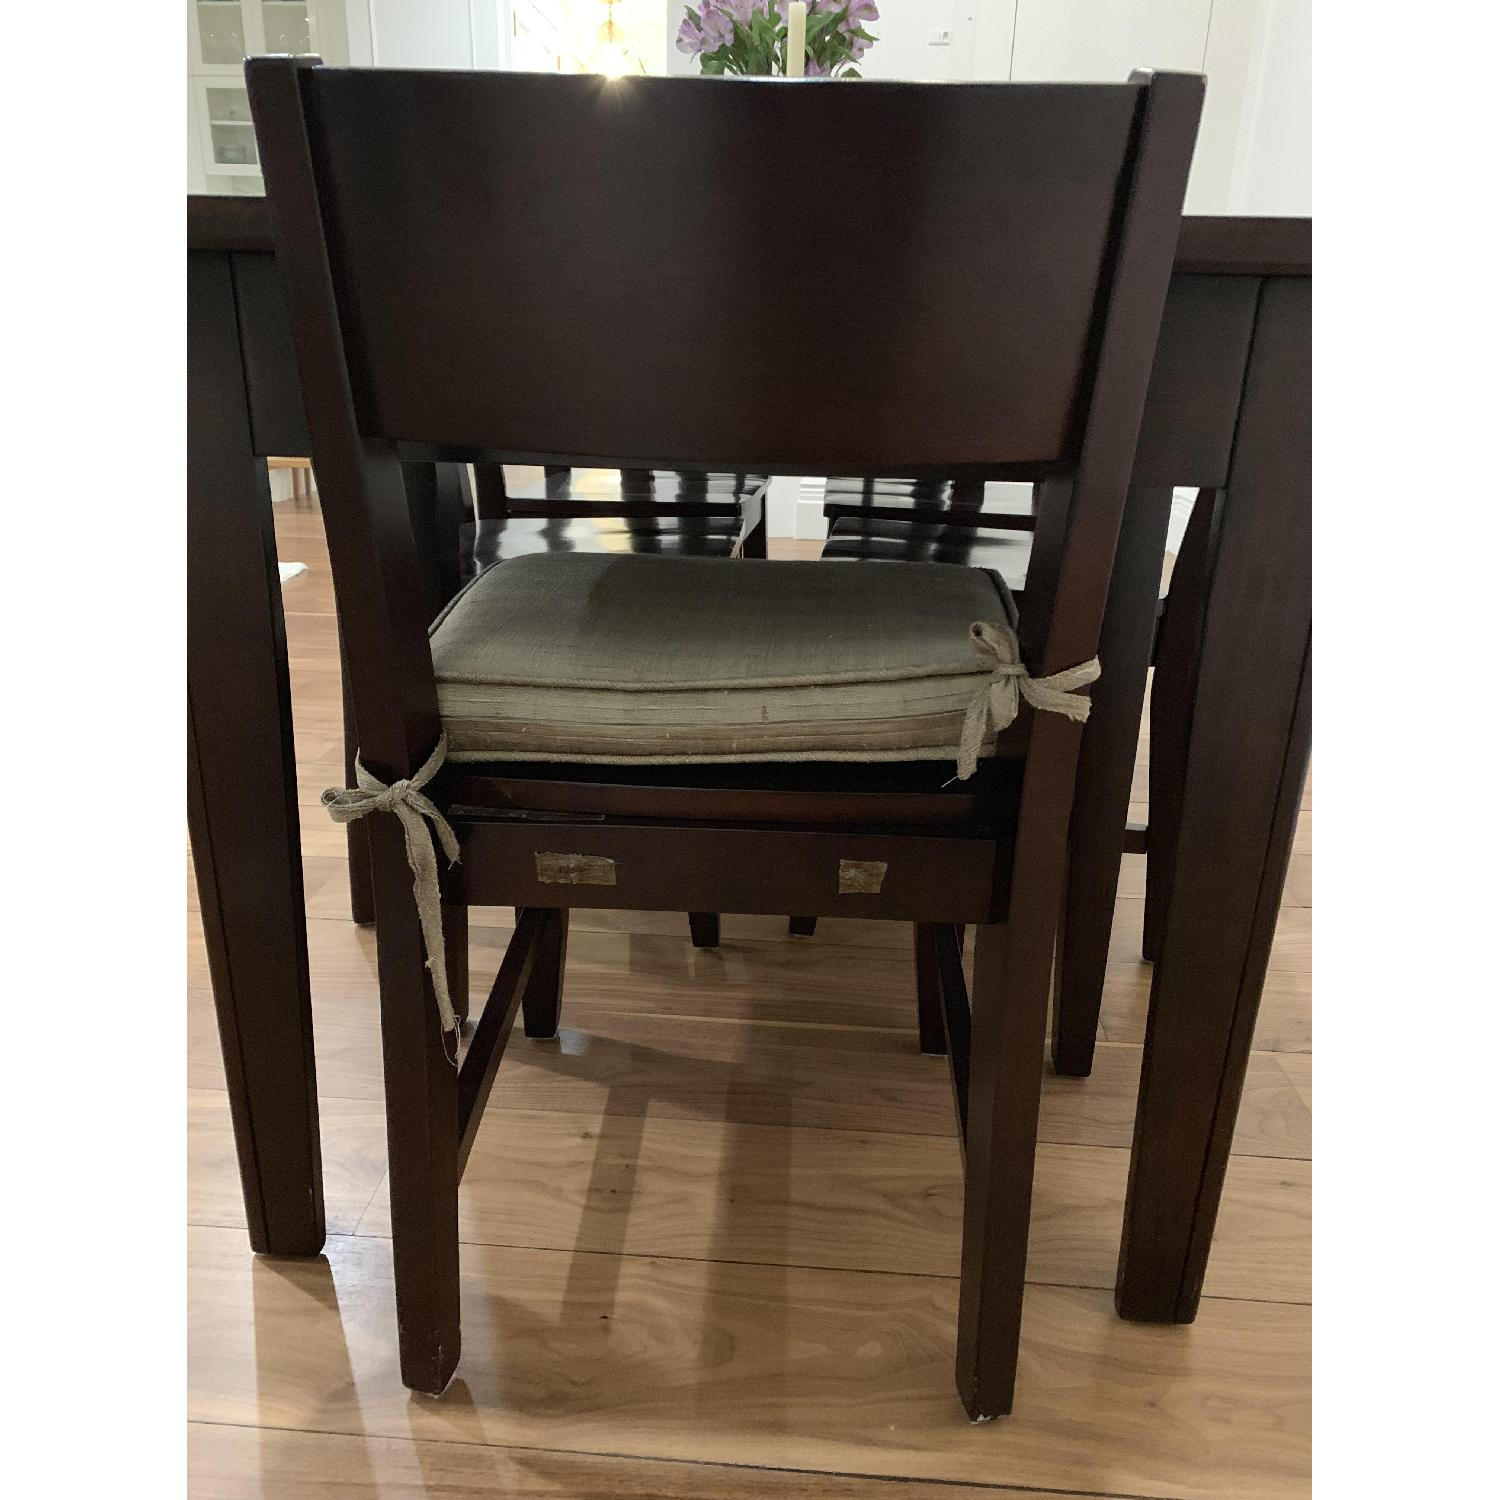 Montreal Espresso Wood Chairs - image-13